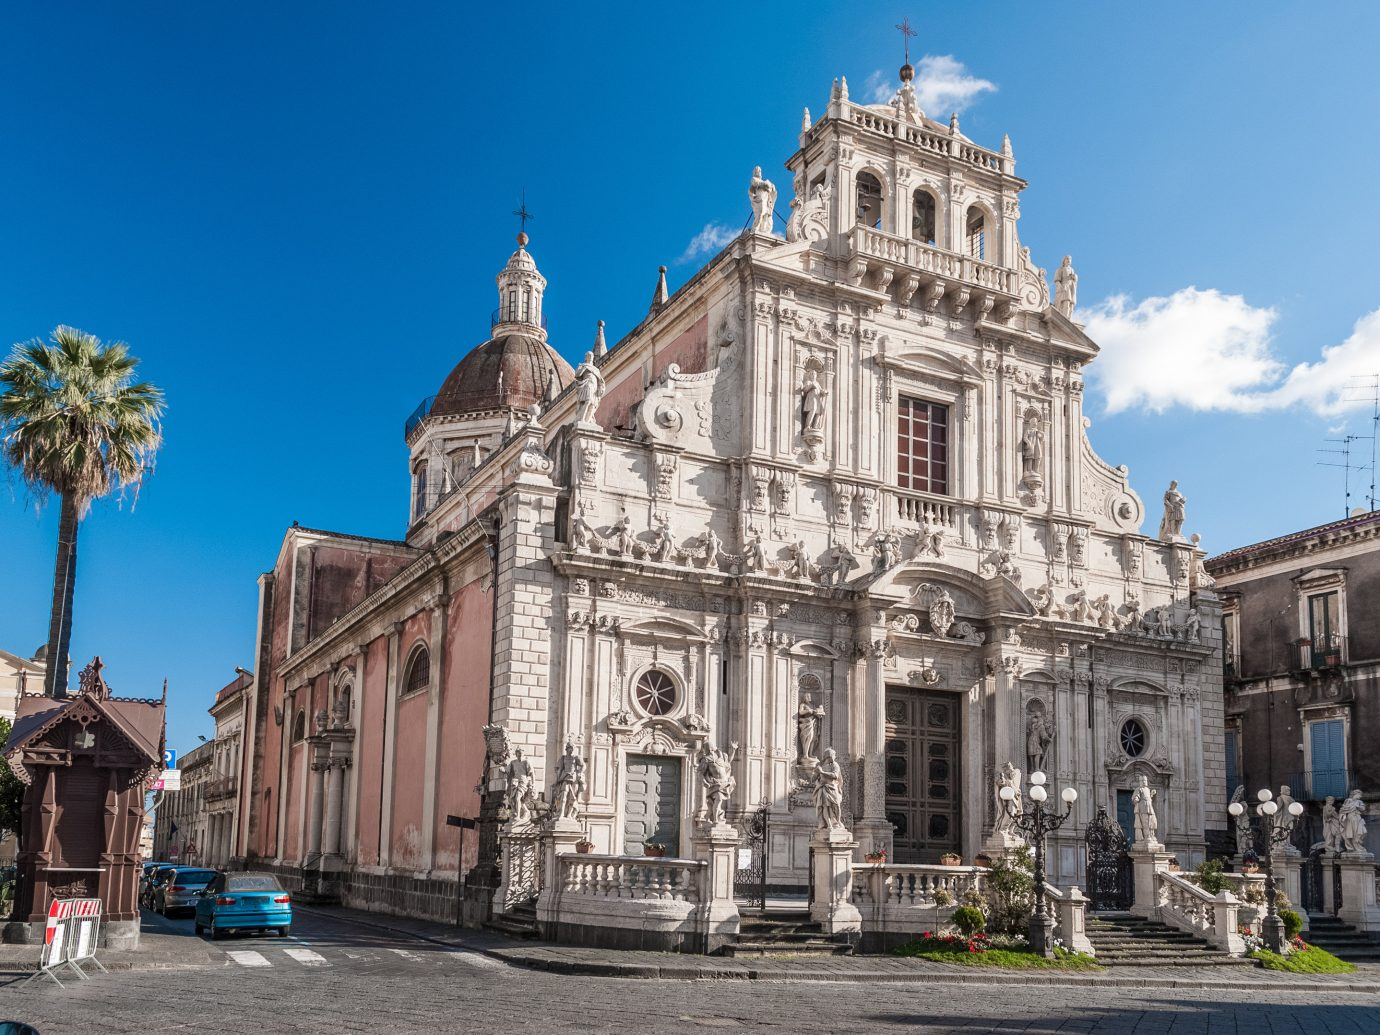 Trip Ideas building outdoor sky classical architecture landmark metropolitan area Church basilica place of worship cathedral Town historic site medieval architecture town square byzantine architecture parish plaza metropolis City facade old tourism tourist attraction palace Downtown tours estate ancient rome ancient history abbey stone government building square